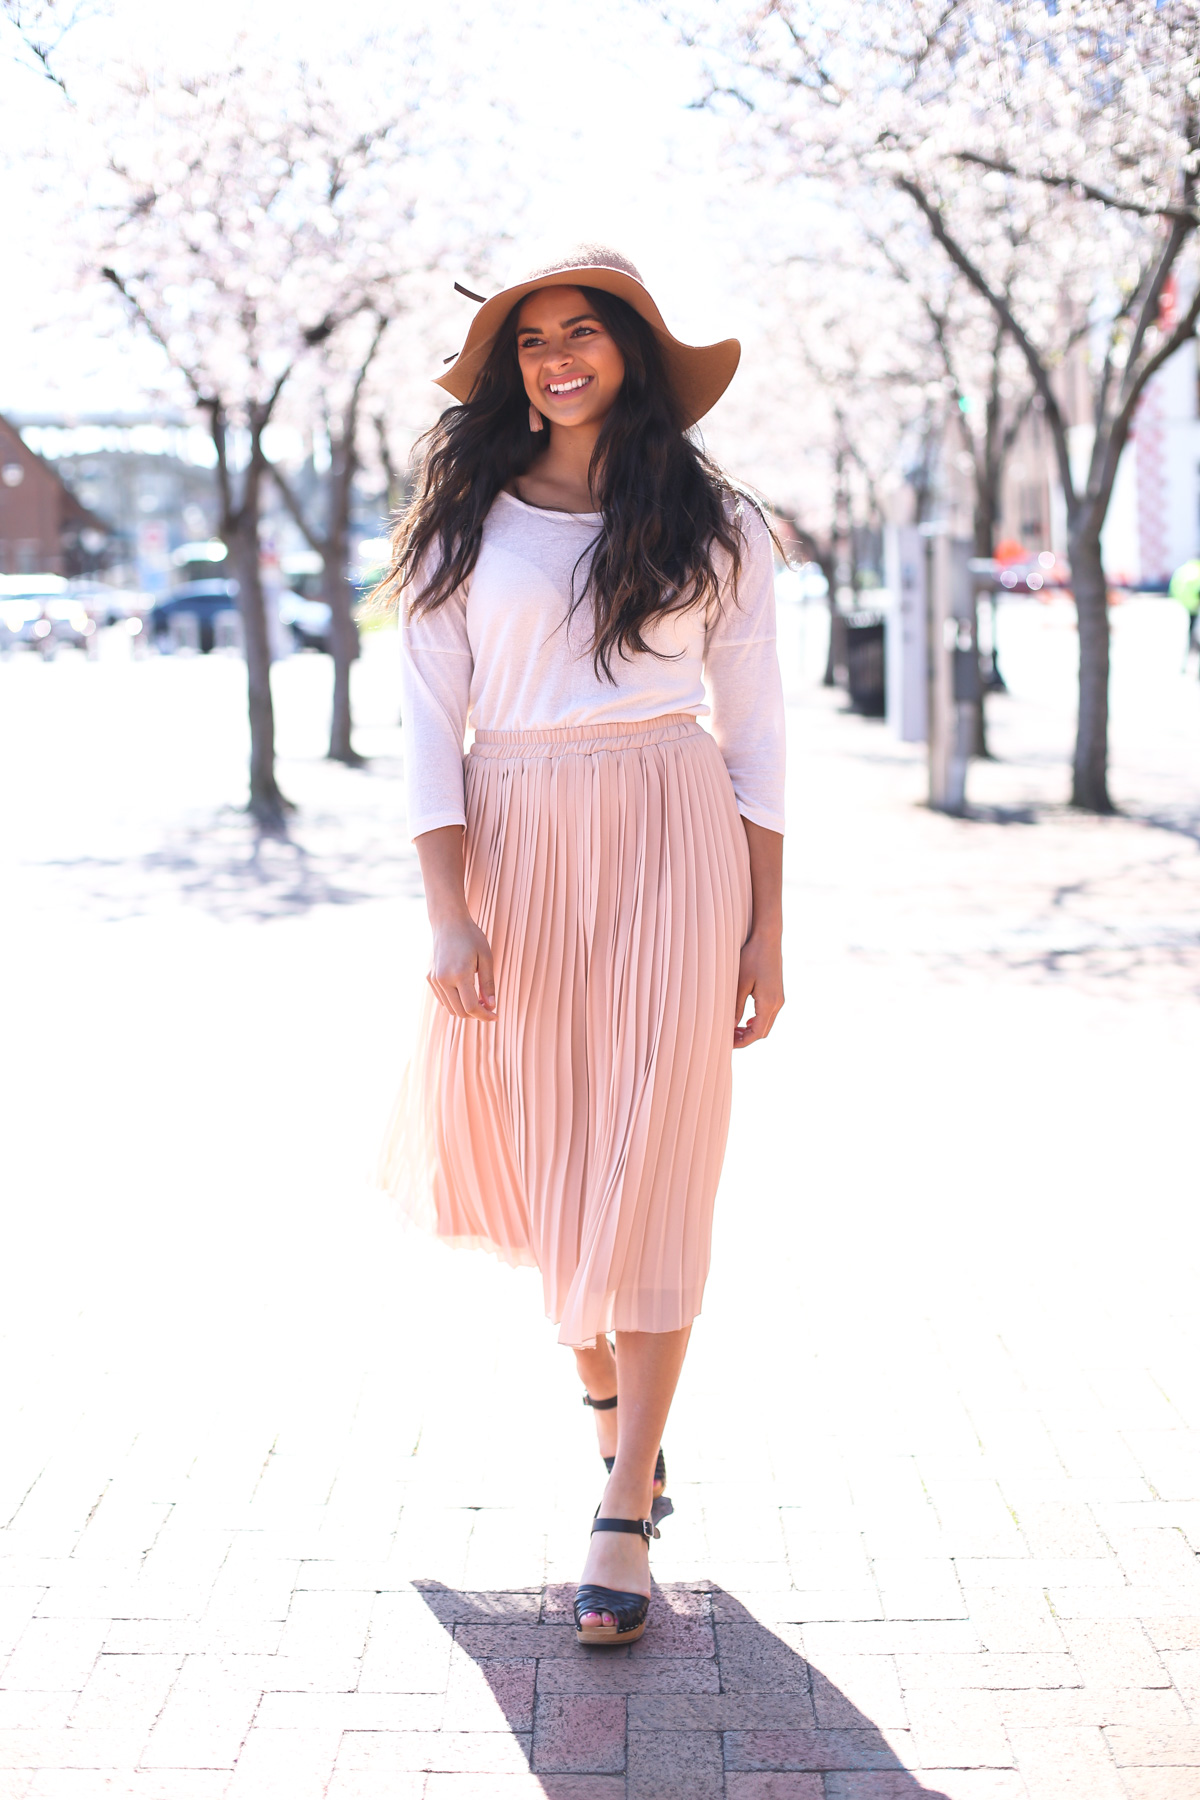 Priya the Blog, Nashville fashion blog, Nashville fashion blogger, Nashville style blog, Nashville style blogger, Spring in Nashville, Spring outfit, black Swedish Hasbeens, Tarte Lip Paint in Homeslice, tan floppy hat, pink pleated skirt, Spring outfit with floppy hat, Swedish Hasbeens, how to wear clogs